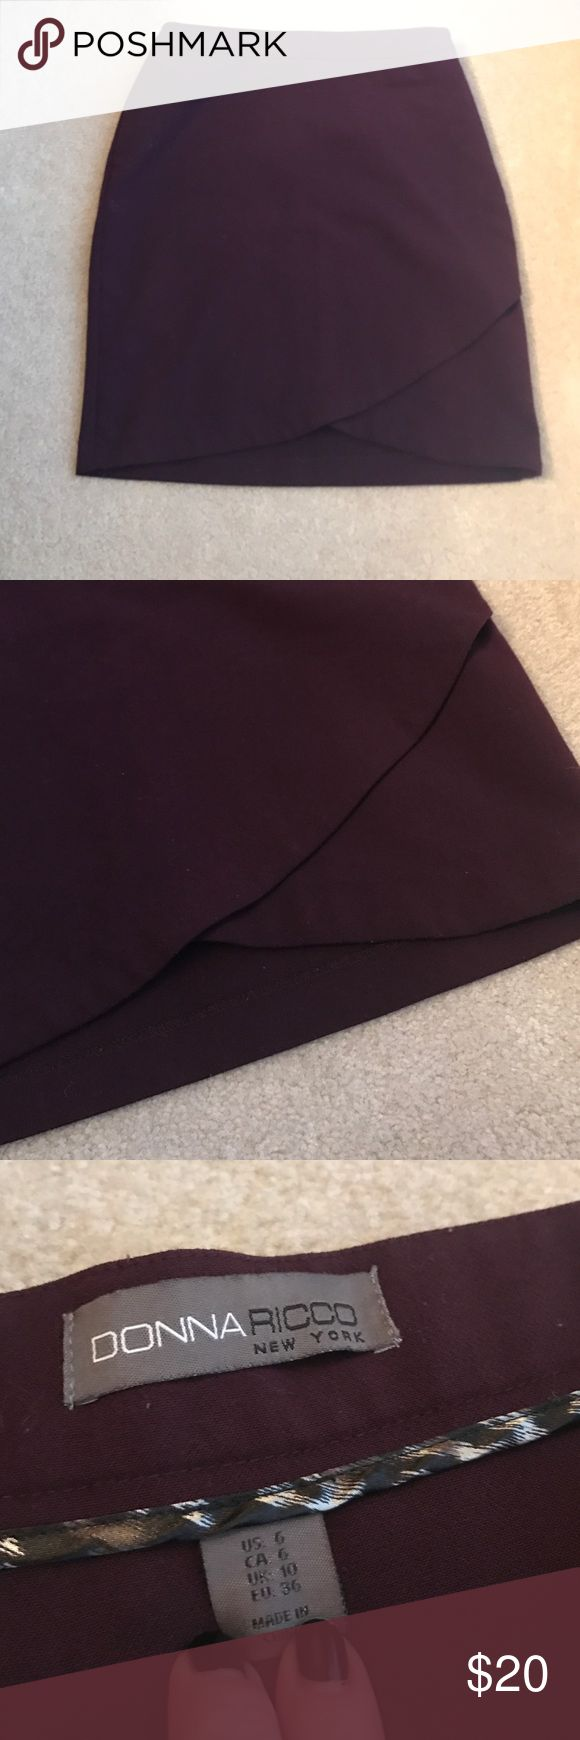 Dark purple tulip hem skirt Good condition! Perfect for all seasons! Makes a fun office look with the tulip hem. Donna Ricco Skirts